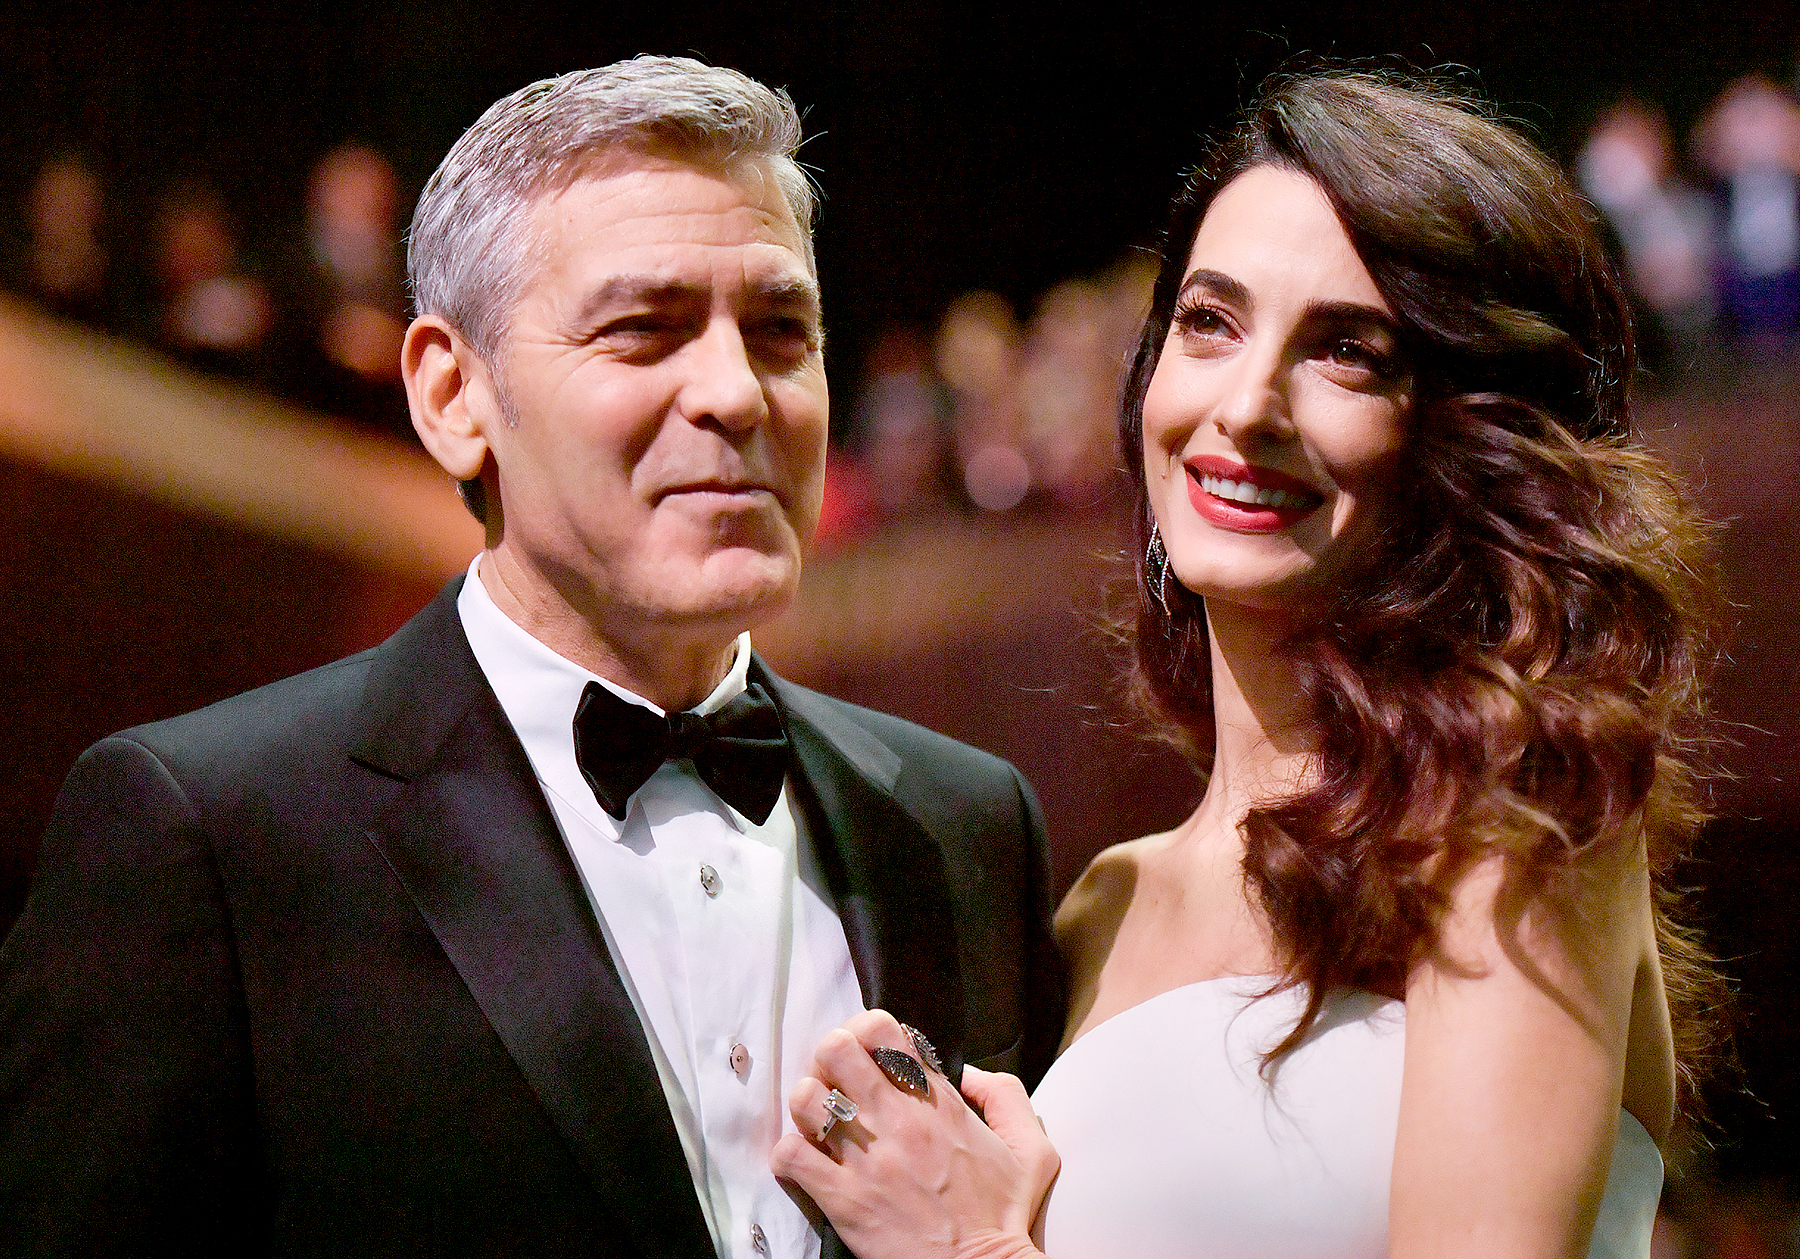 George Clooney and Amal Clooney attend the 42nd Annual Cesar Film Awards Ceremony held at the Salle Pleyel in Paris on February 24, 2017.